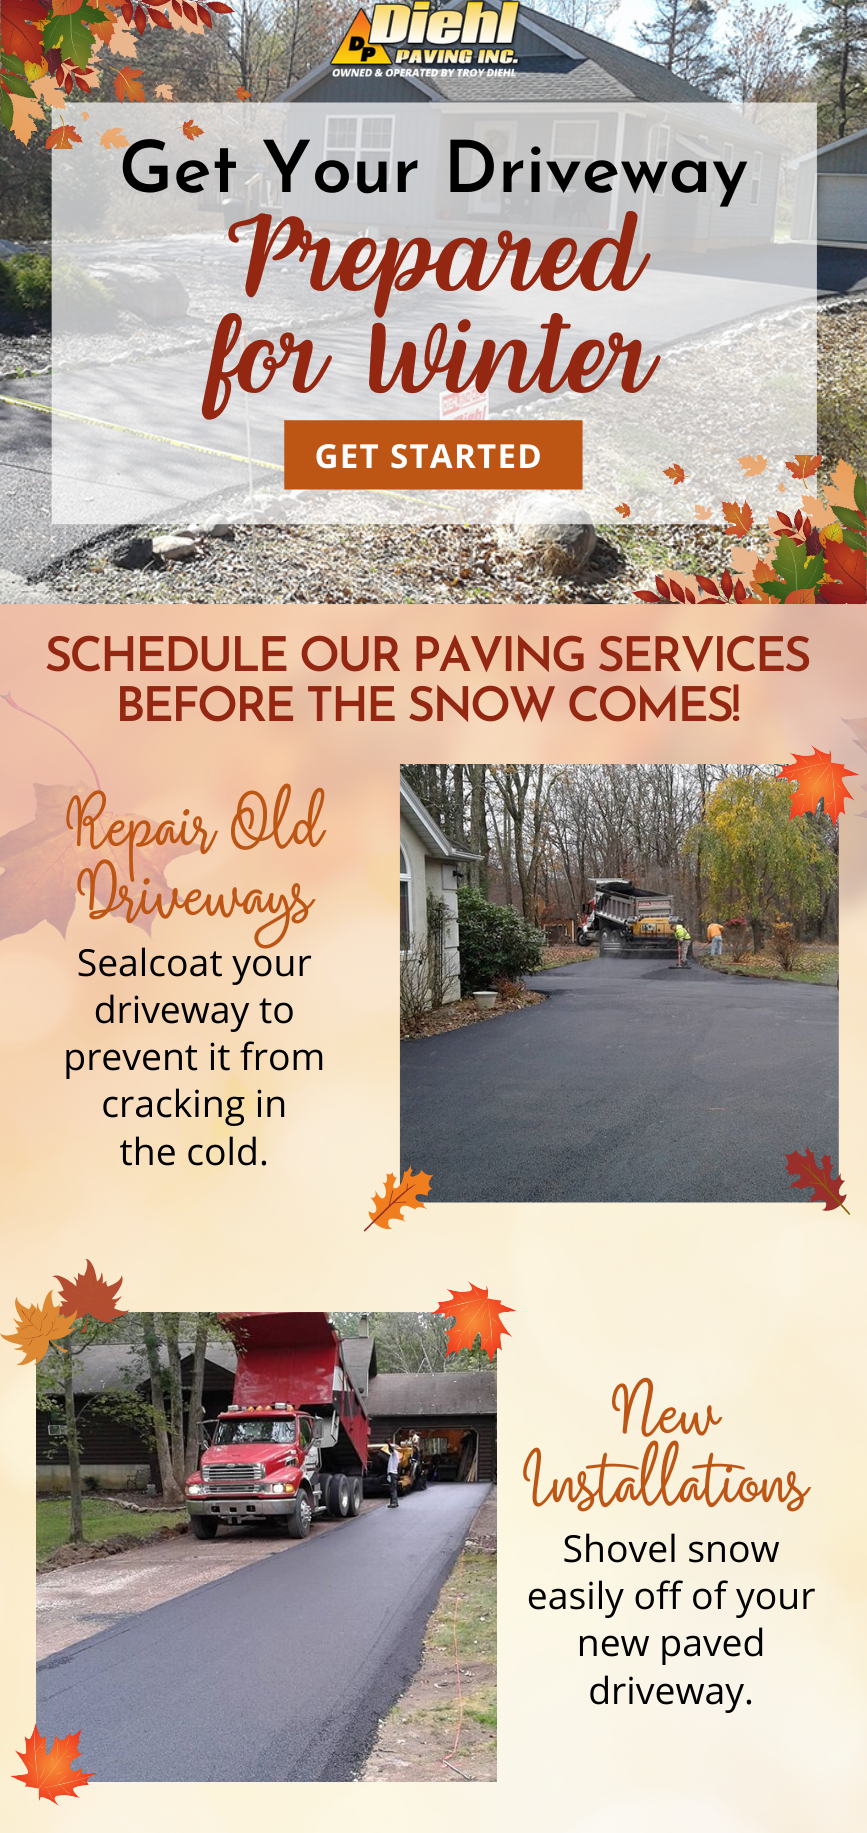 November Email - Prepare Your Driveway For Winter! ❄ 1